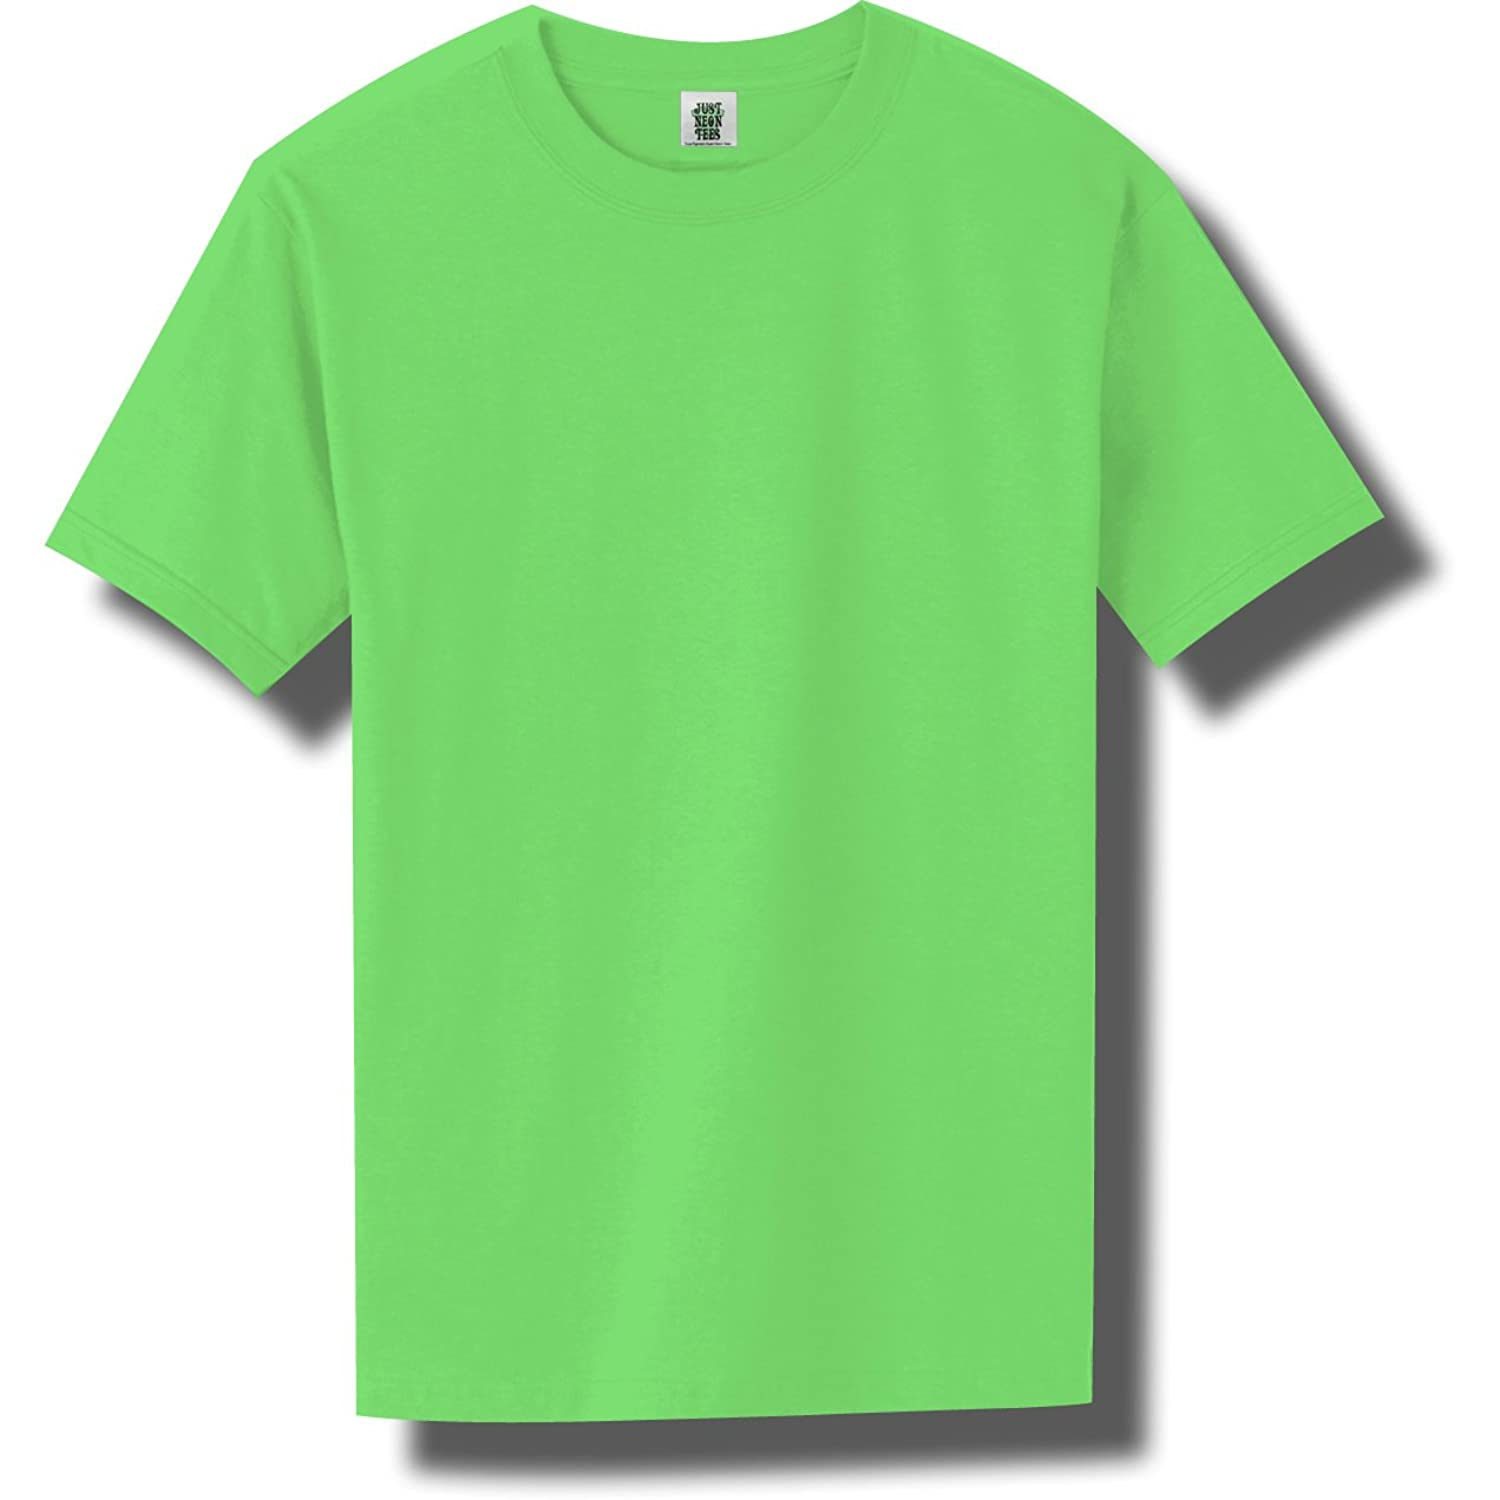 Short Sleeve Bright Neon T-Shirt in 6 Bright Colors well-wreapped ...